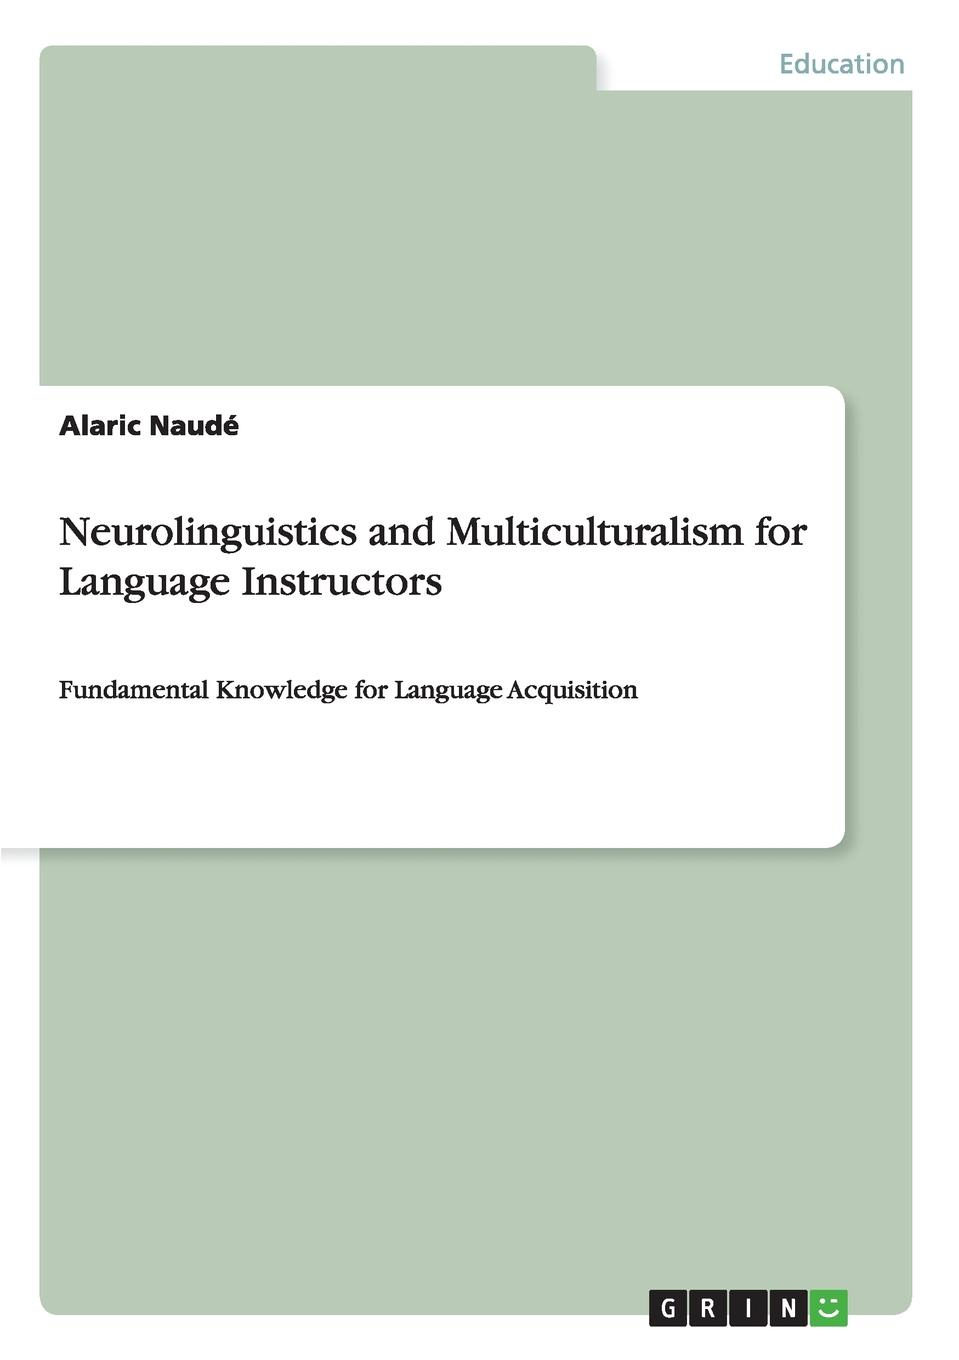 Alaric Naudé Neurolinguistics and Multiculturalism for Language Instructors 智能管理系统工程实用技术(附光盘)